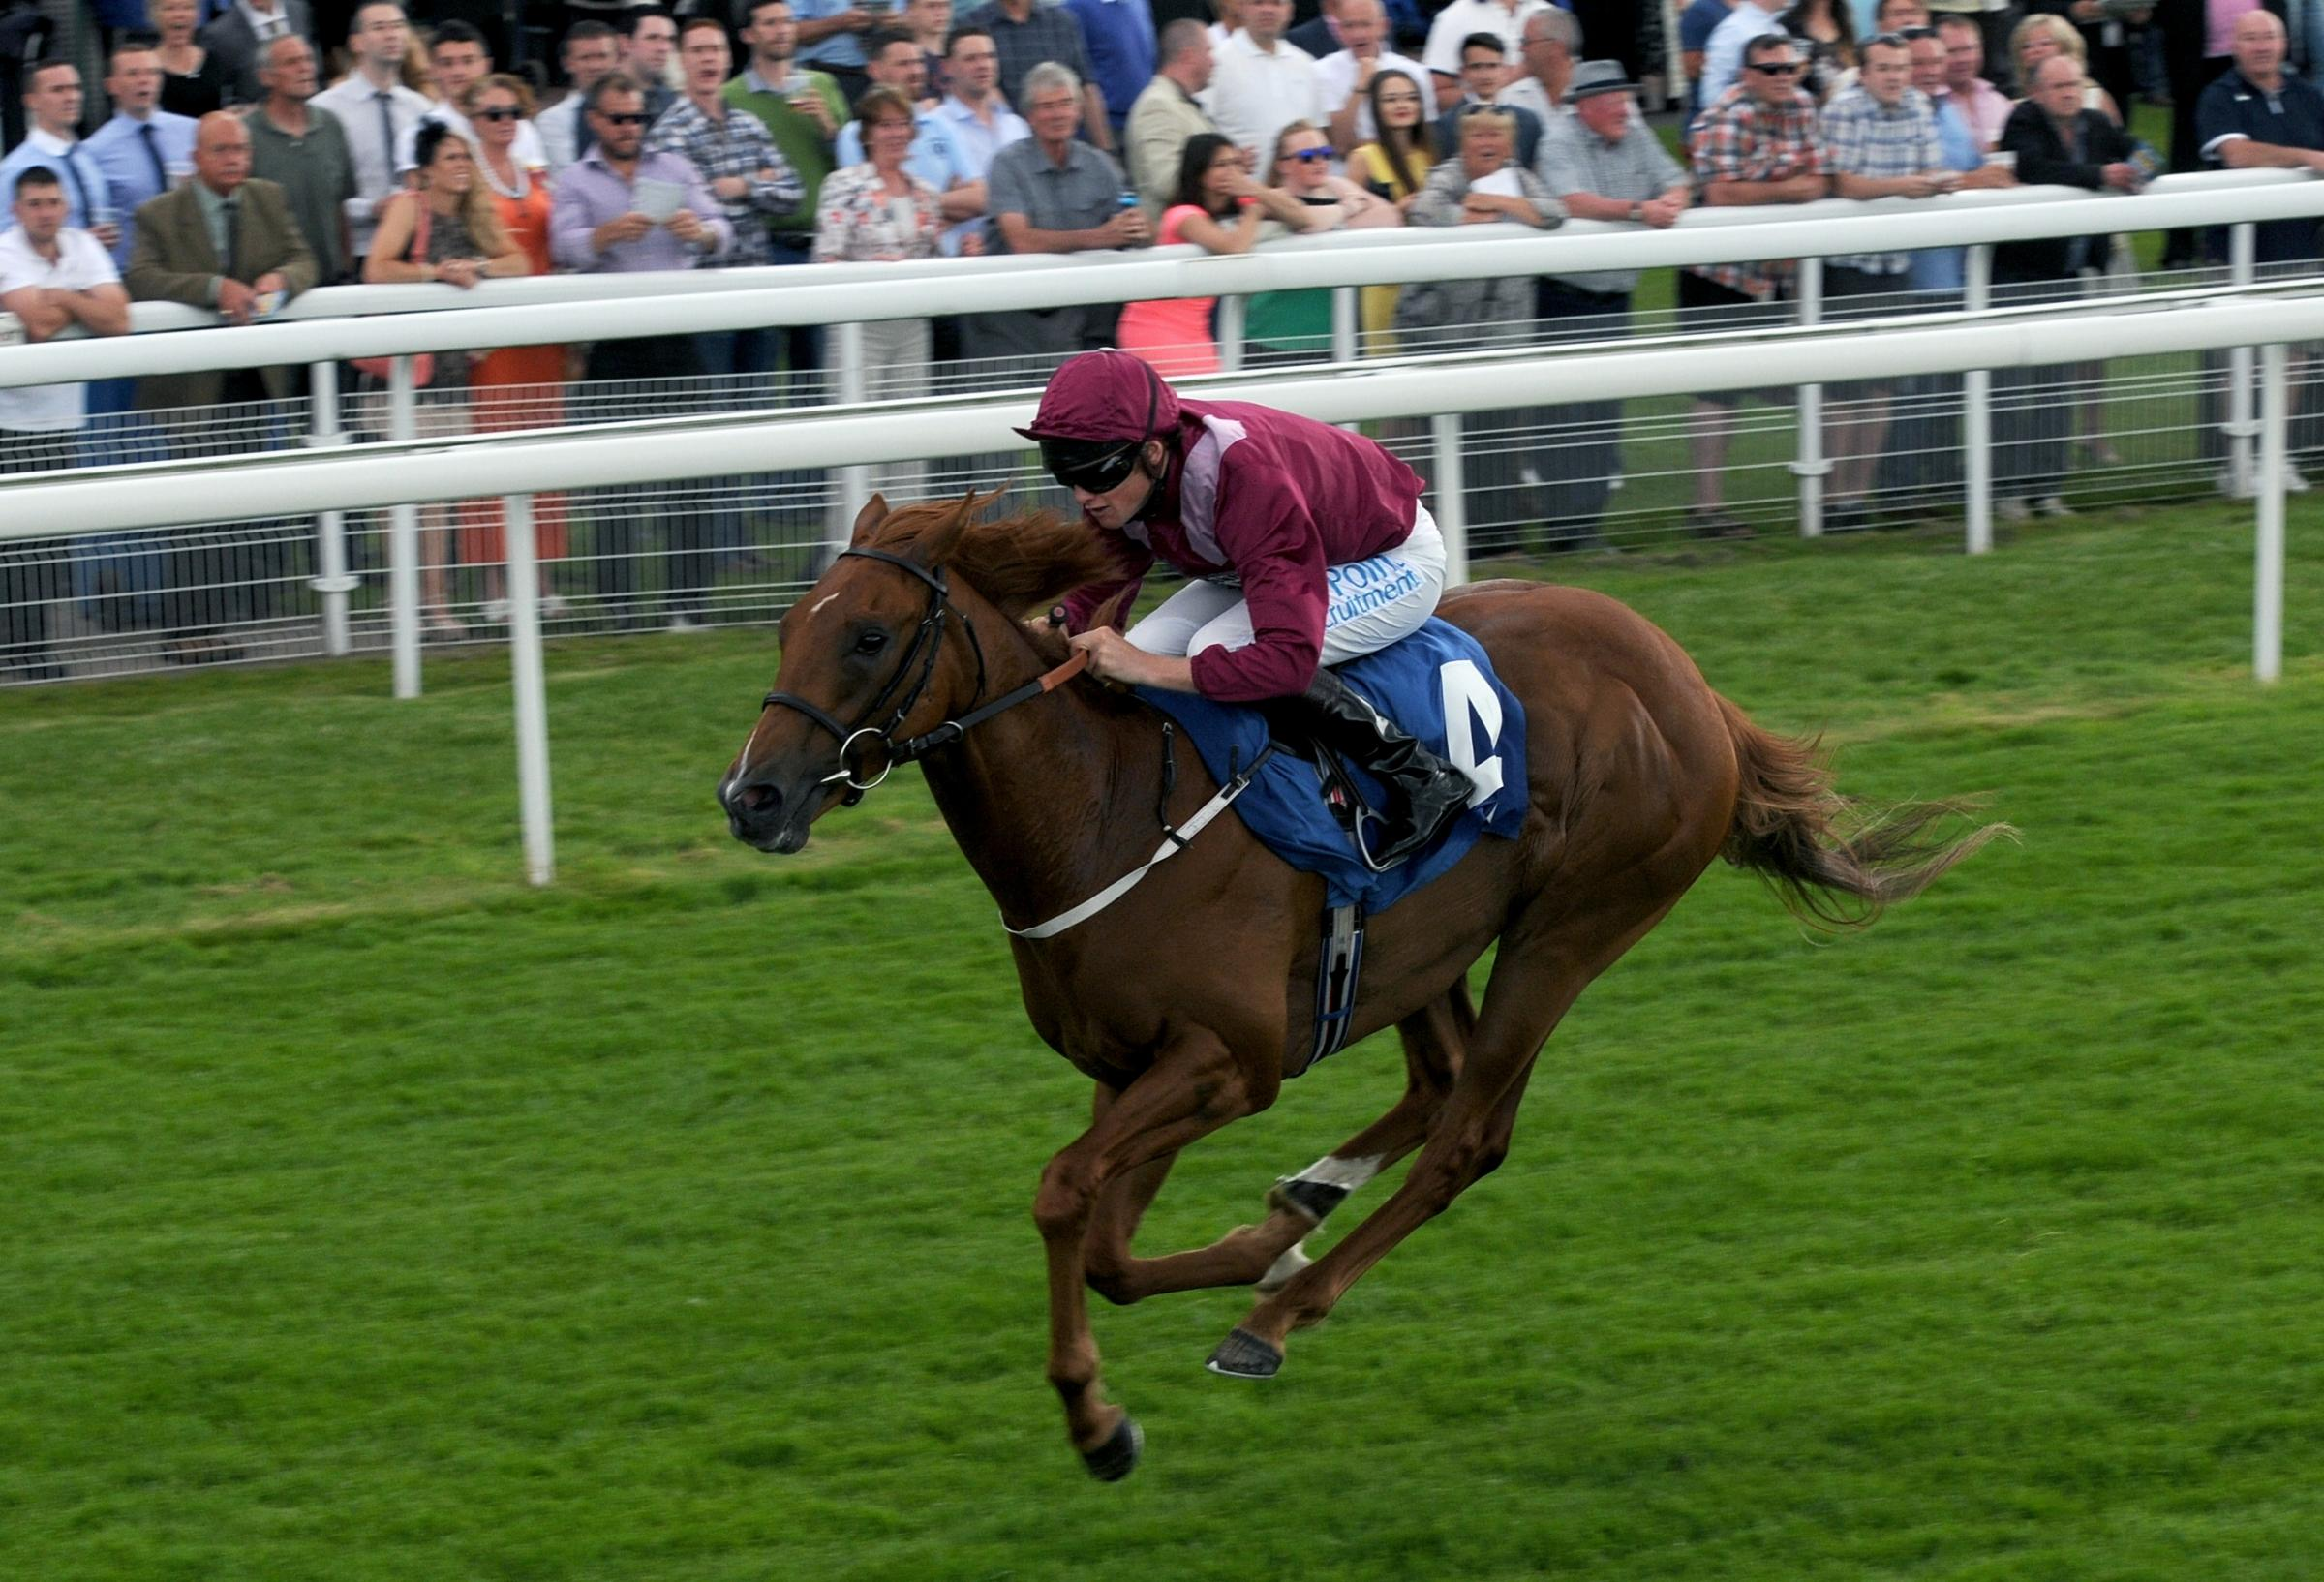 The John Quinn-trained Pres Rapide, ridden by Phillip Makin, wins the Constant Security Irish Stallion Farms EBF Maiden Stakes at York. Picture: Mike Tipping